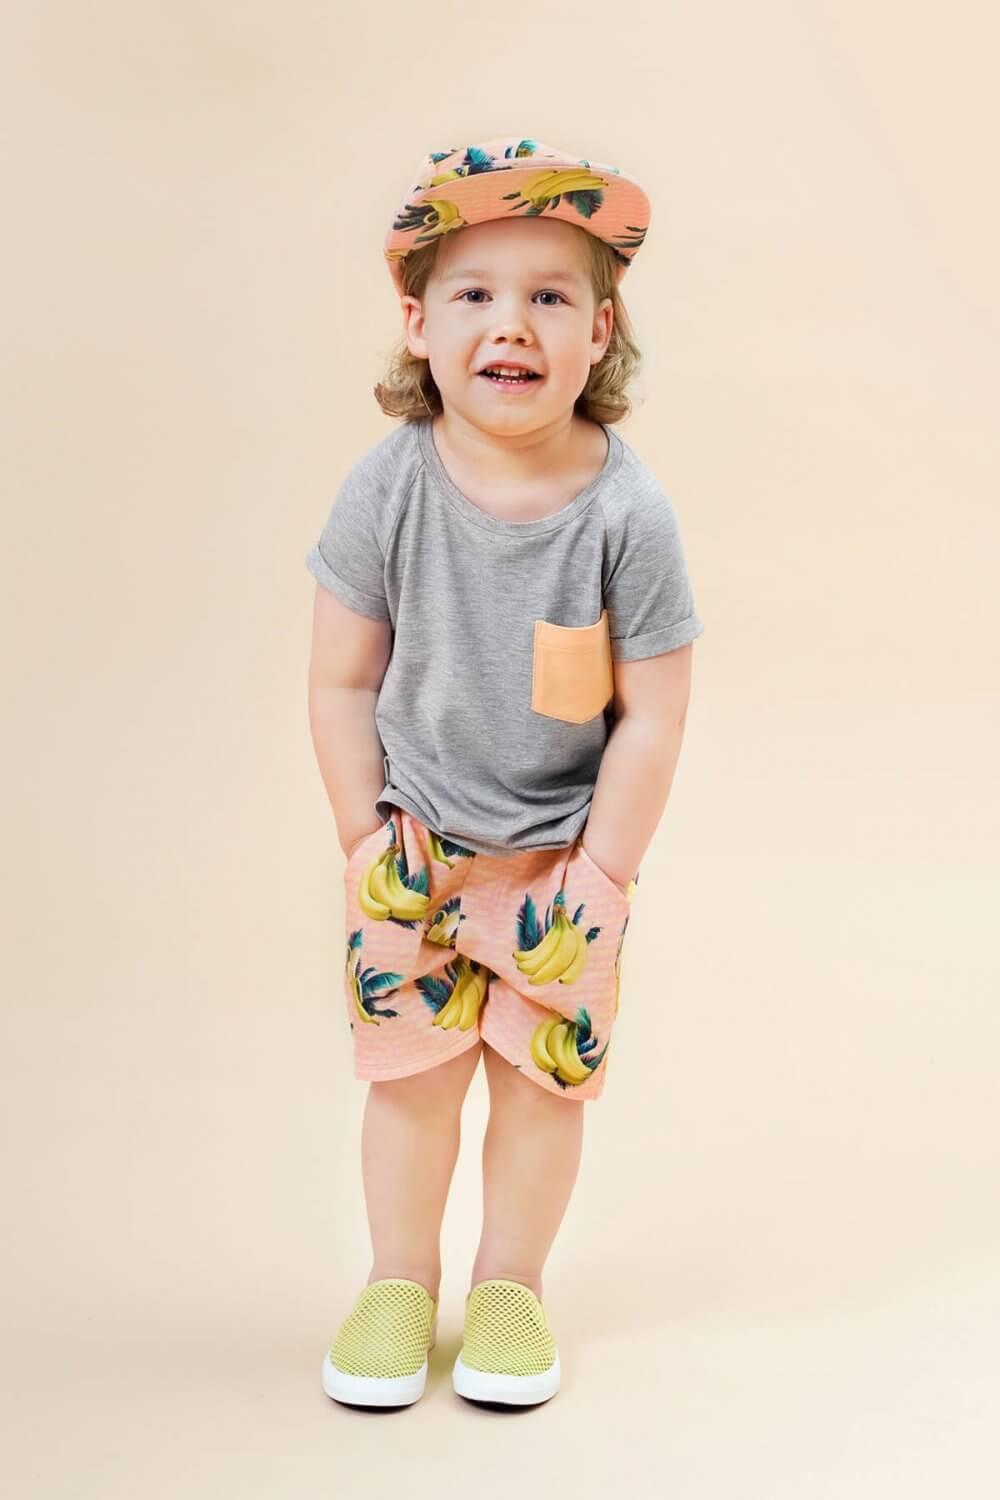 Little Man Happy ORANGE DIP Pocket Shirt BANANA SKY Bermuda Shorts Mood III